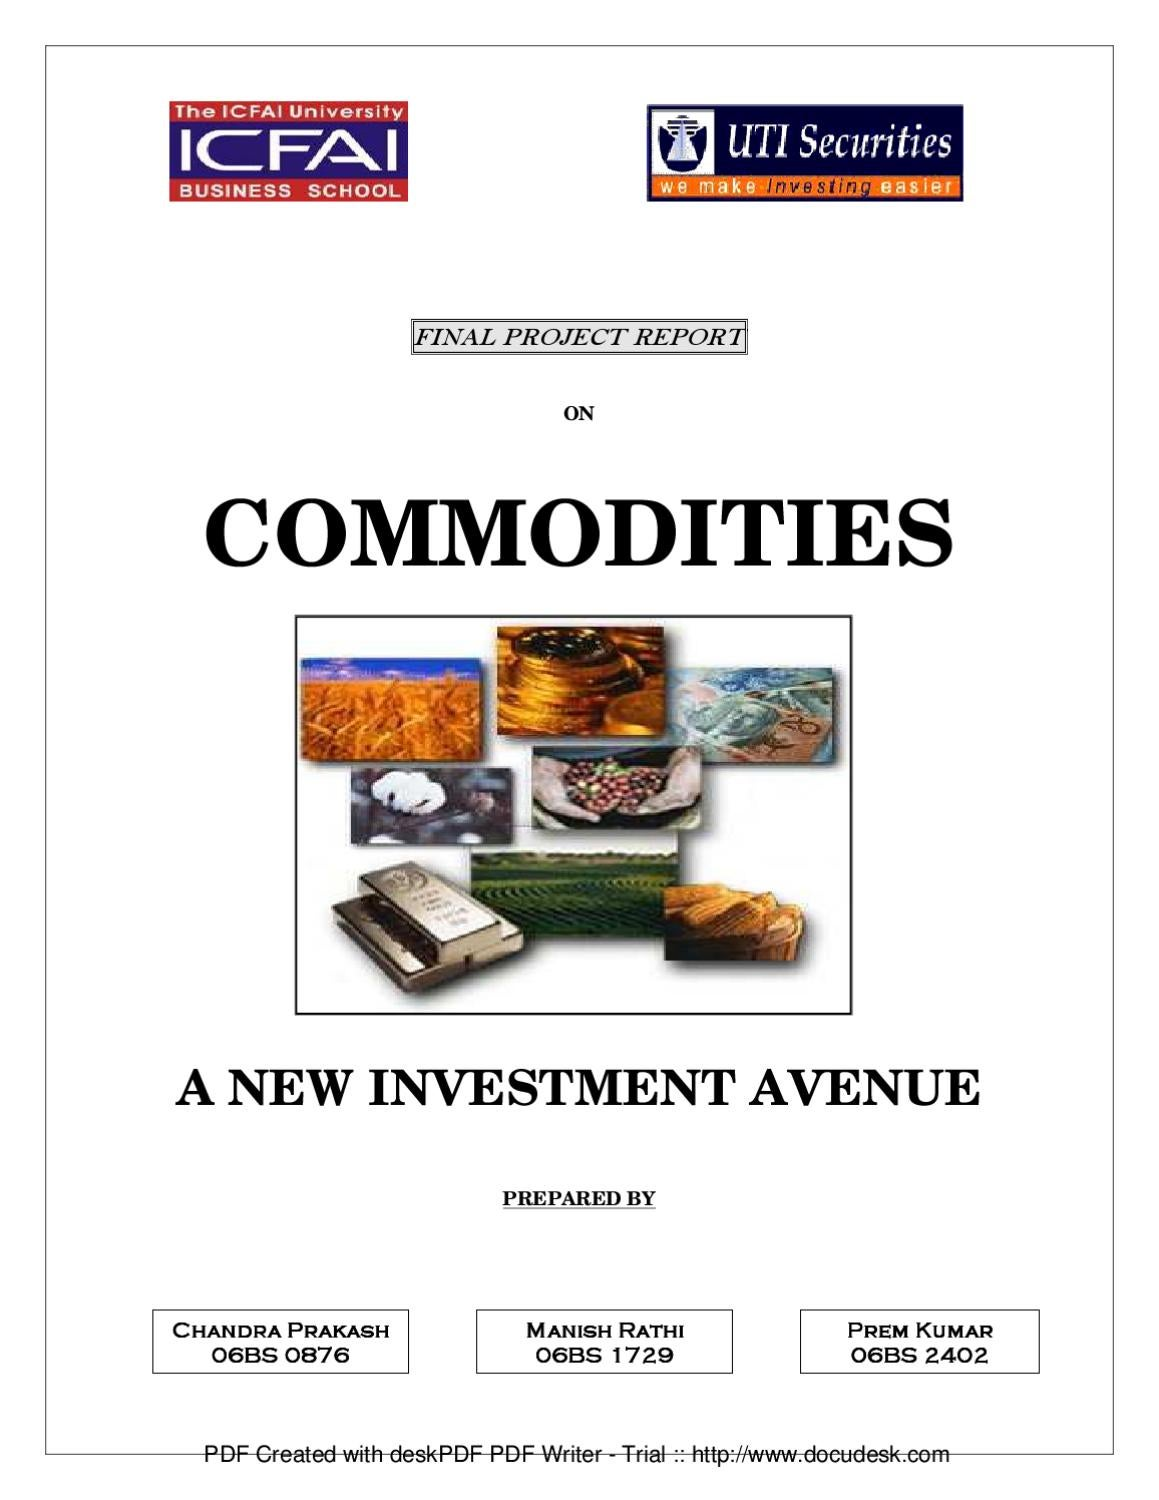 A report on Commodities -- A NEW INVESTMENT AVENUE by Sanjay